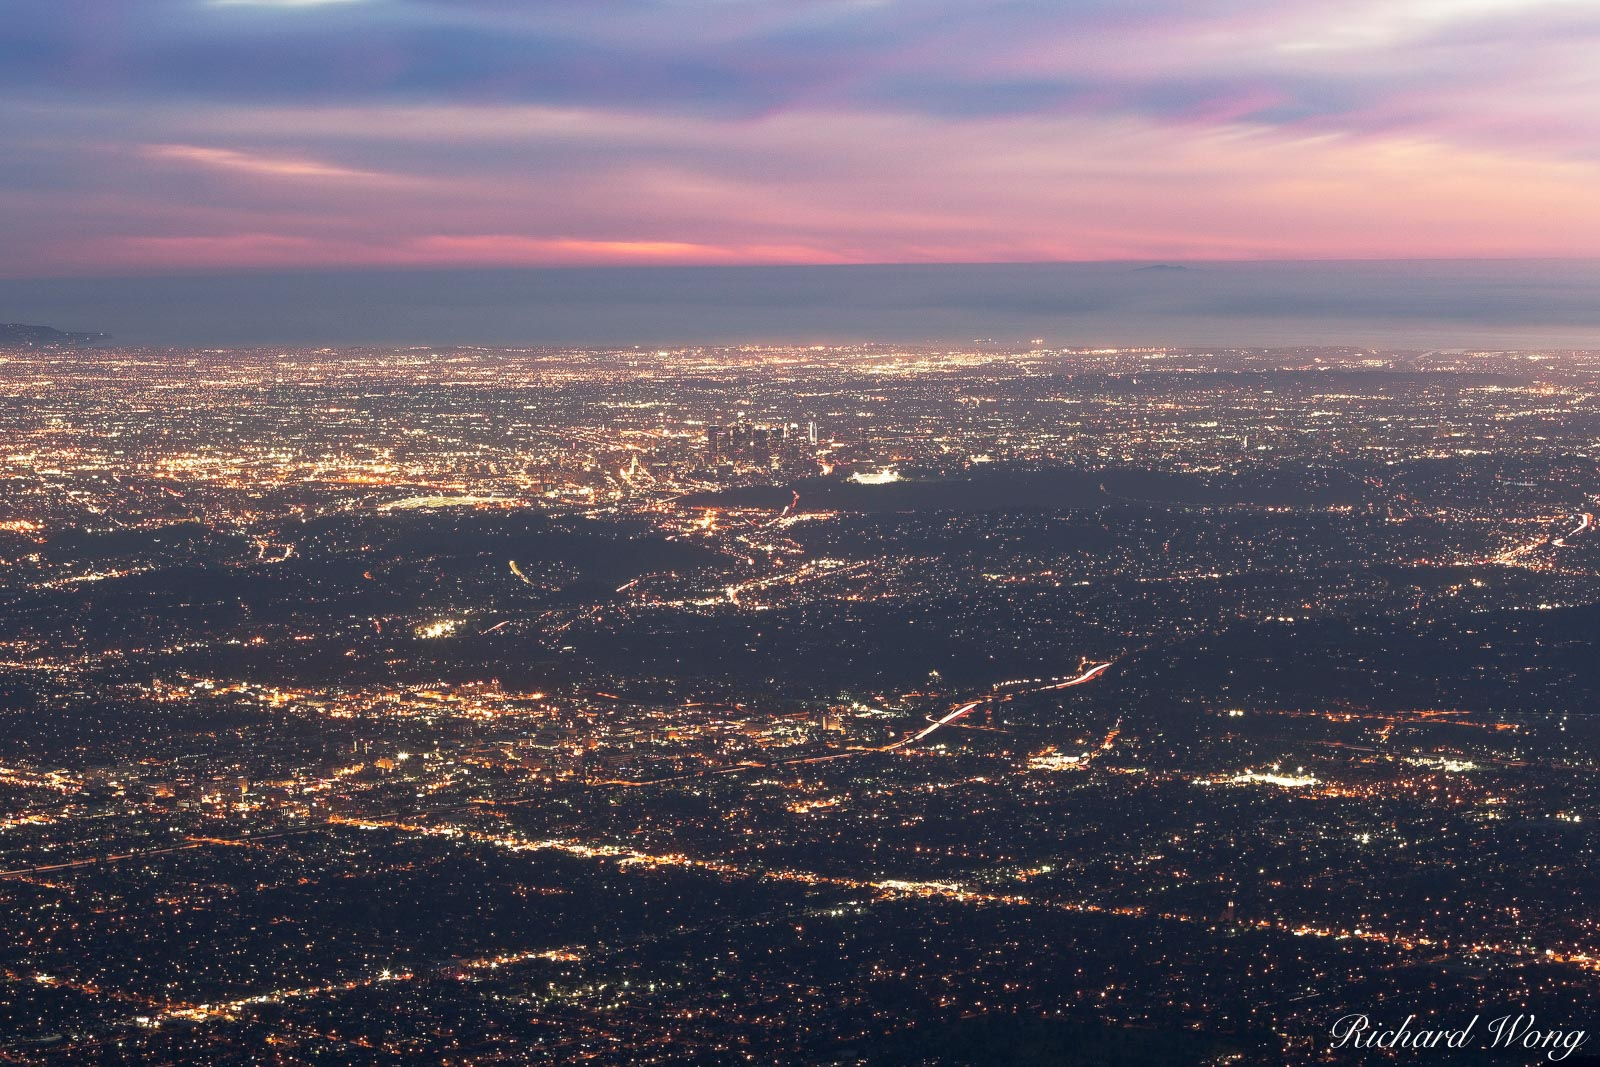 Los Angeles at Night from Mount Wilson Observatory, Angeles National Forest, California, photo, photo